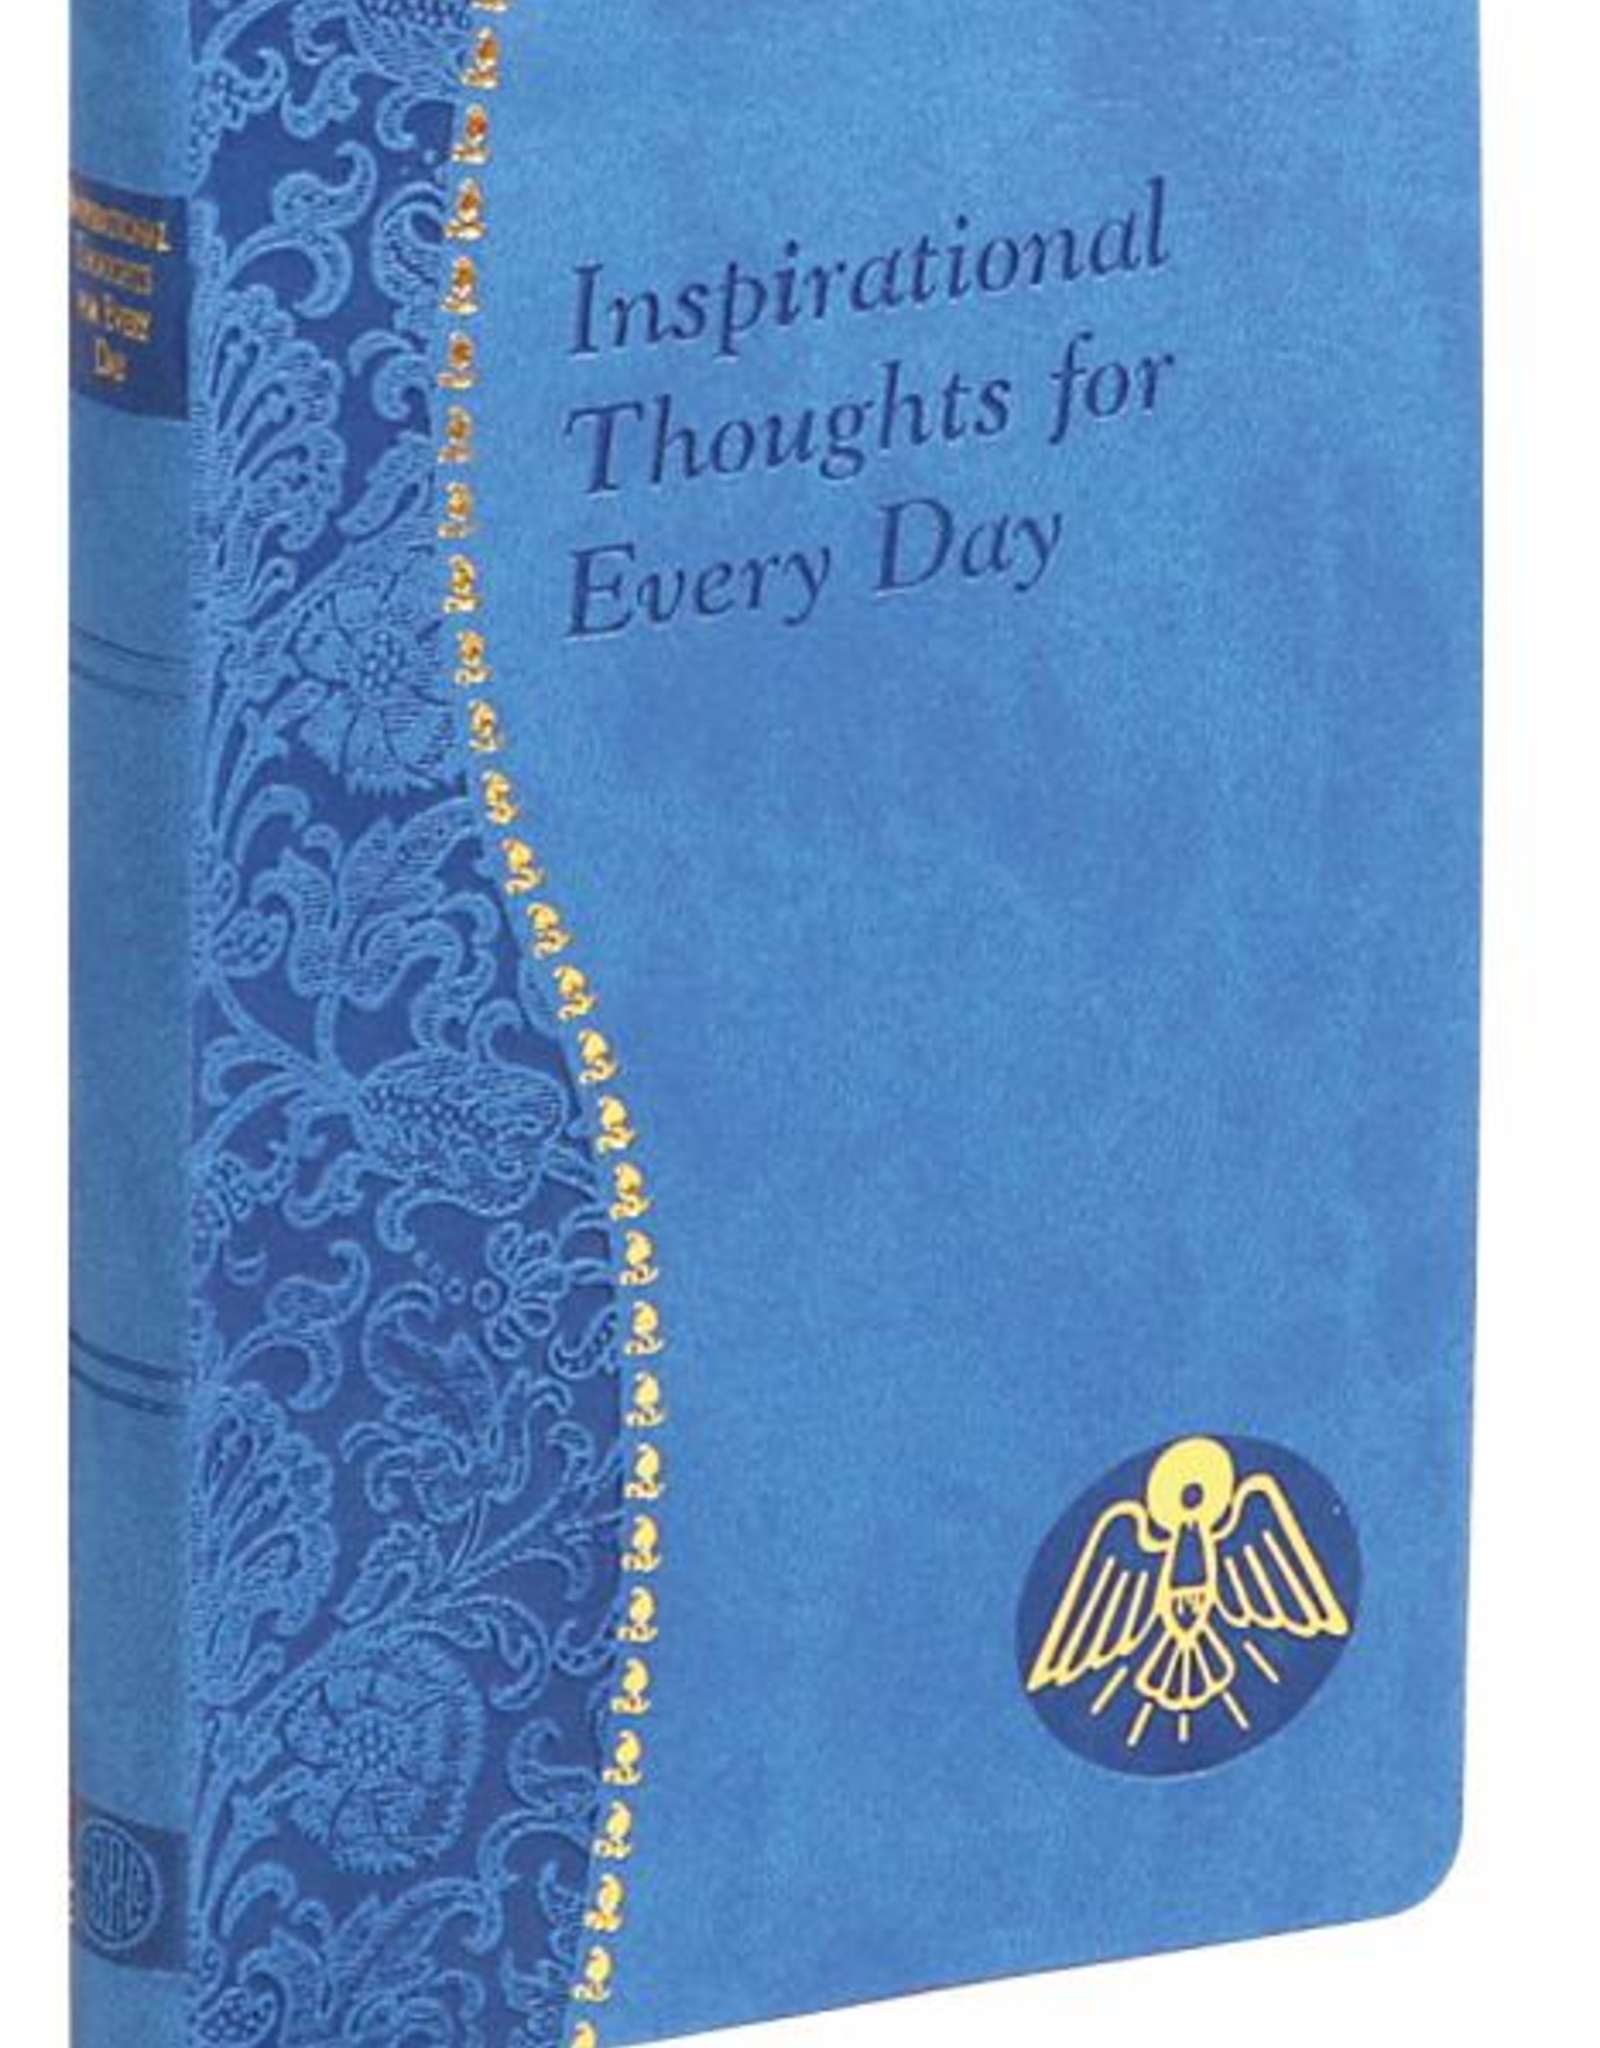 Catholic Book Publishing Inspirational Thoughts for Every Day, by Rev. Thomas Donaghy